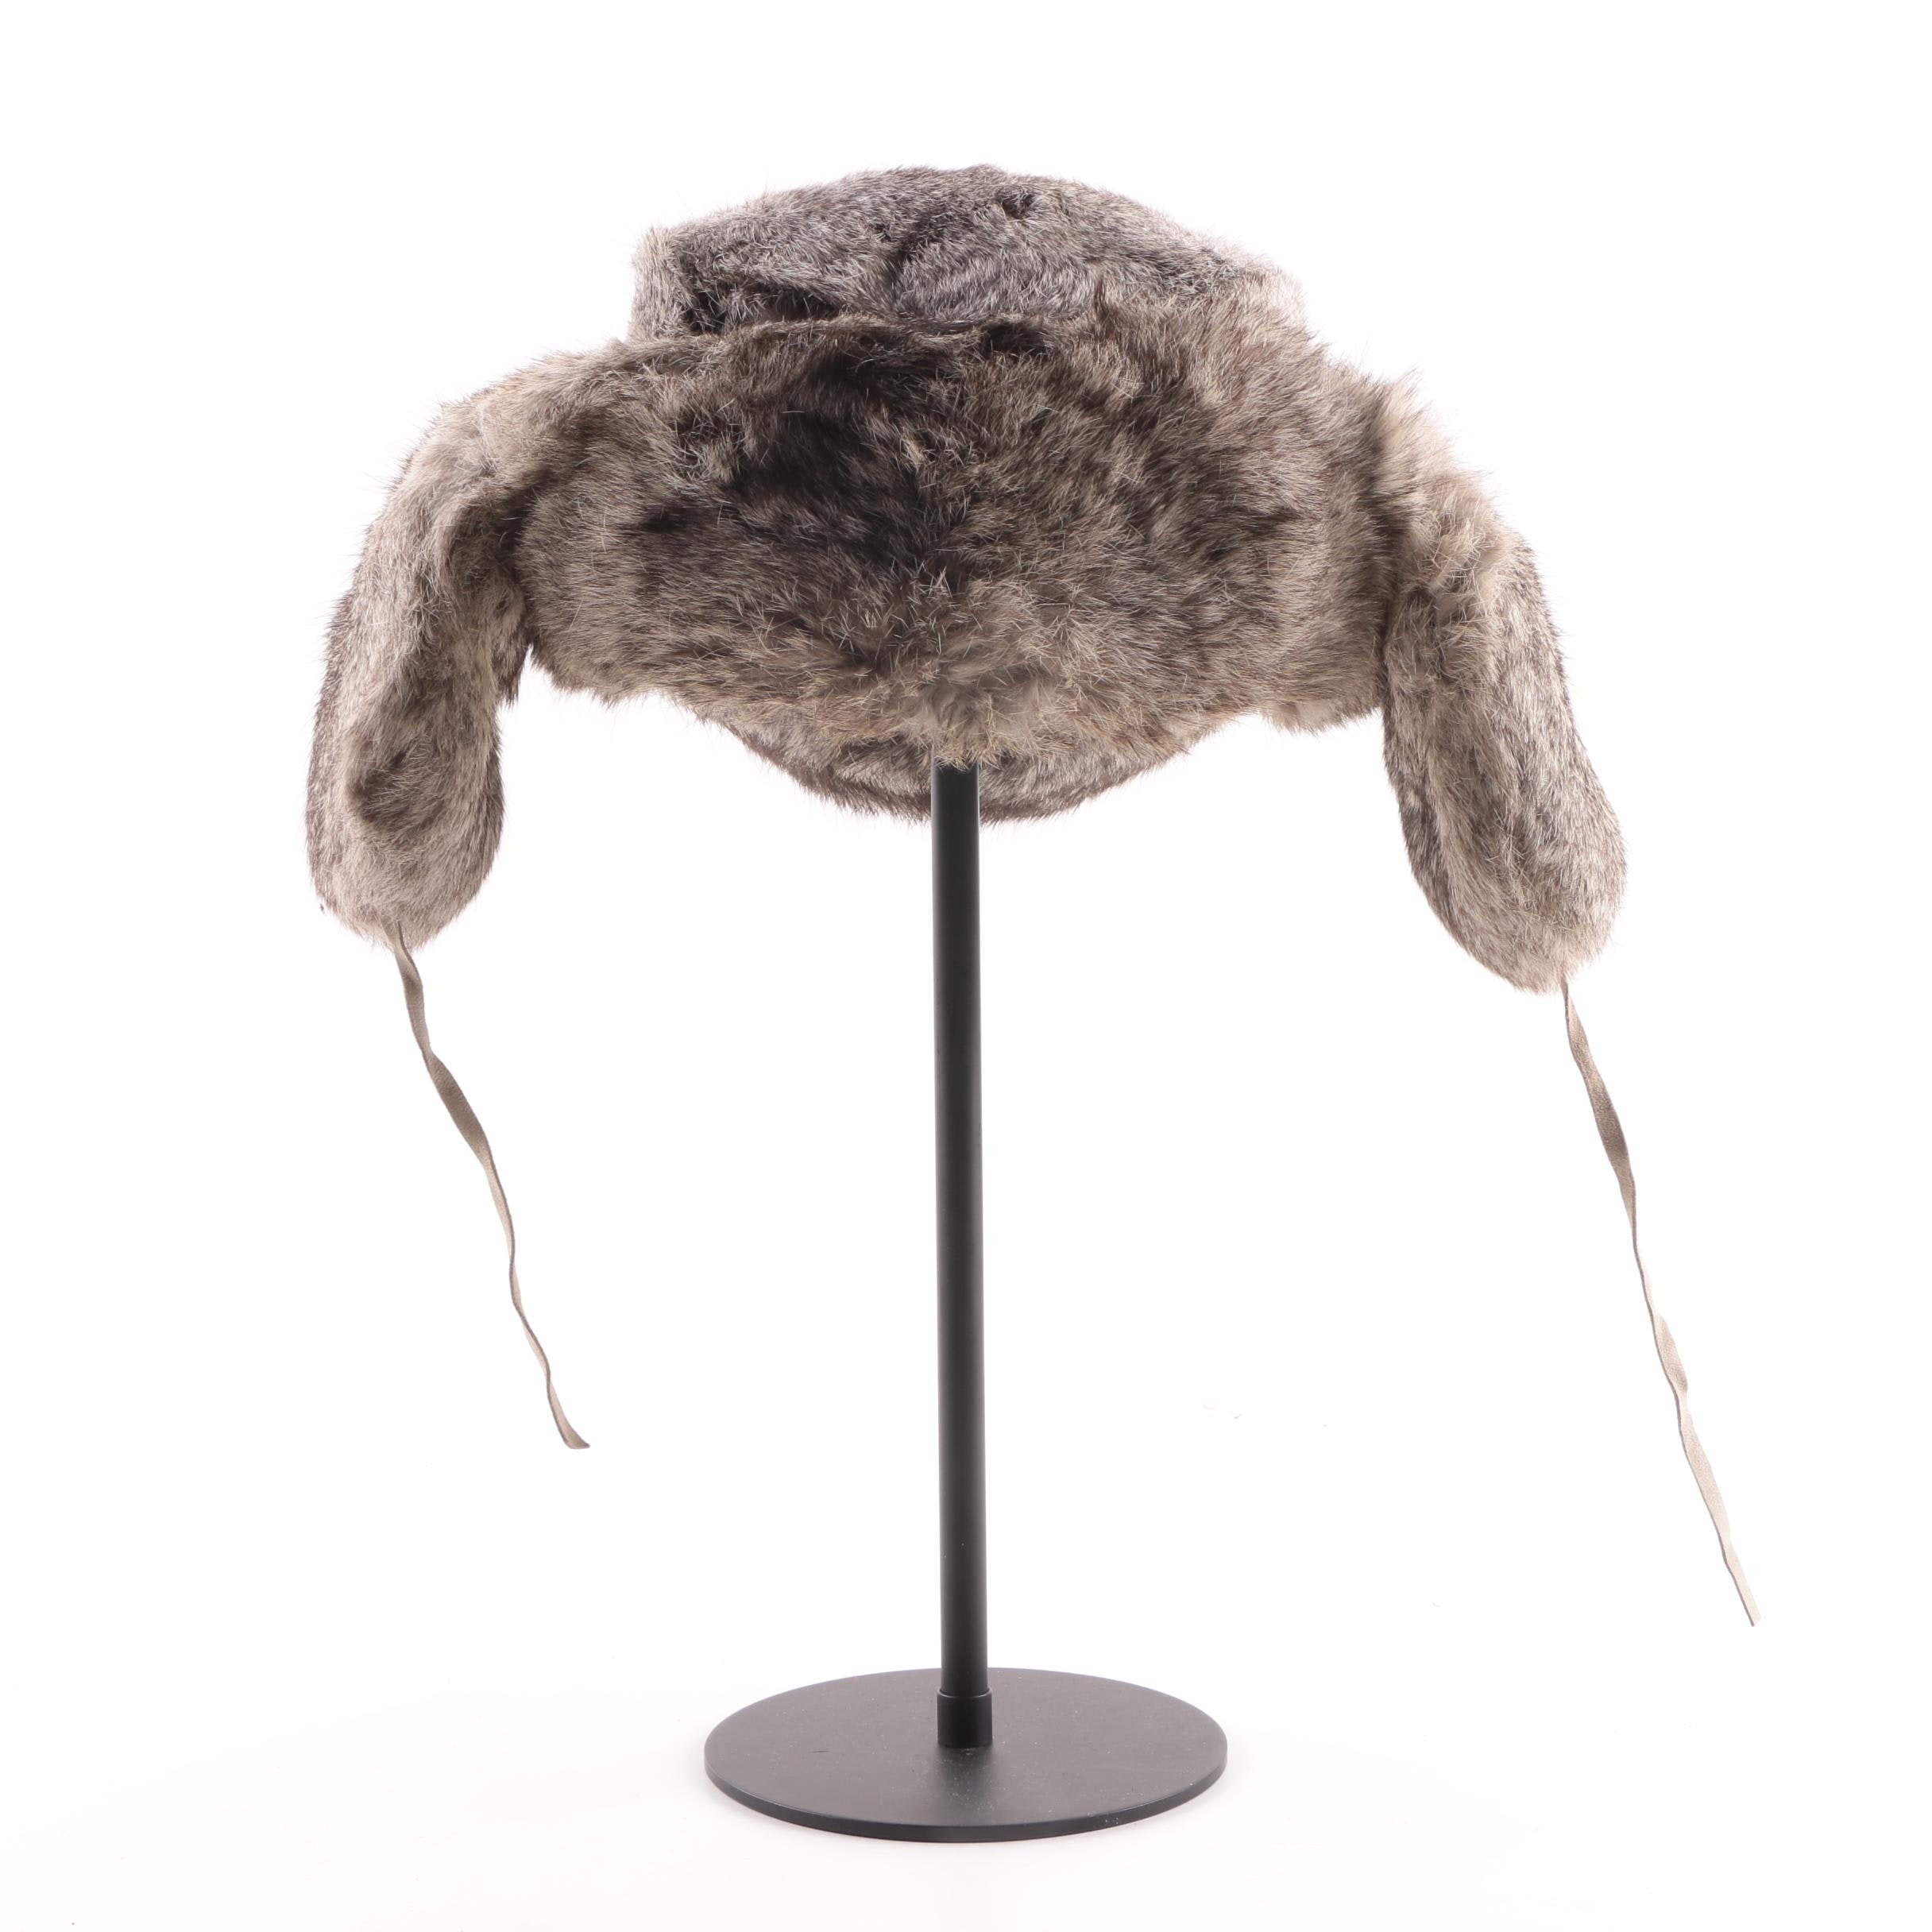 Men's Vintage Chinese Raccoon Fur Trapper Hat